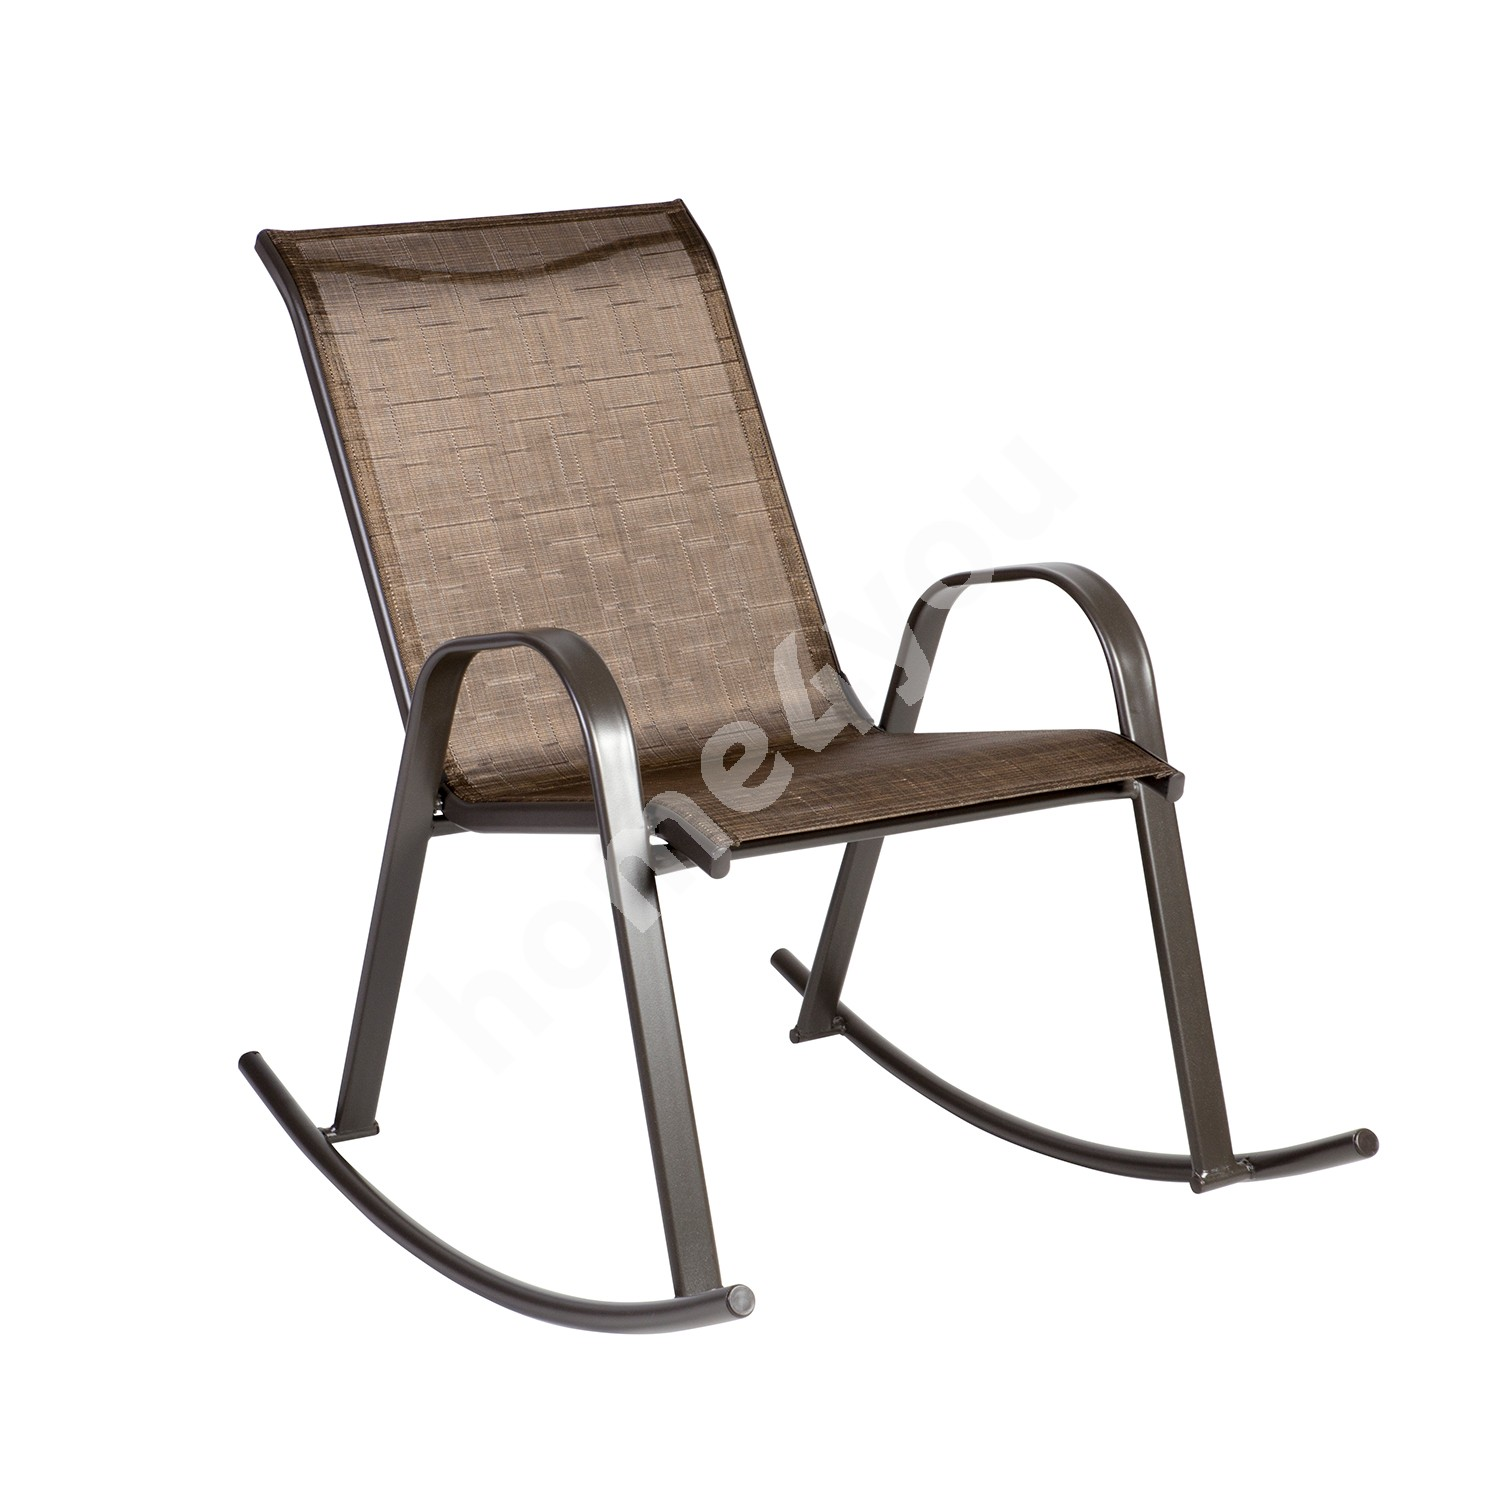 Rocking chair DUBLIN 90x63xH91cm, seat and back rest: textiline, color: golden brown, steel frame, color: dark brown